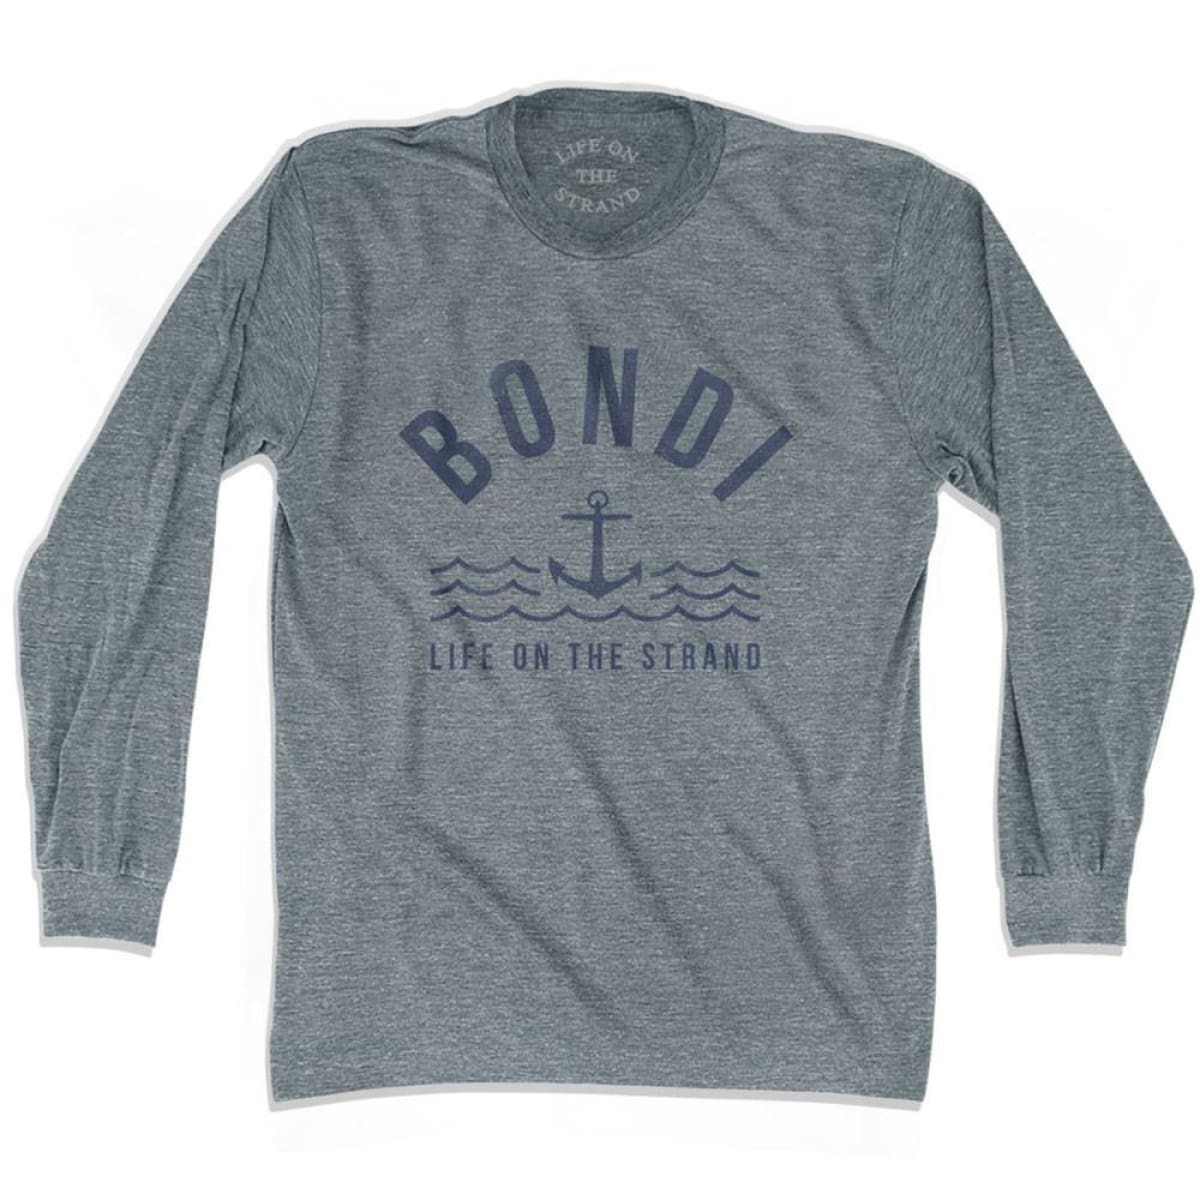 Bondi Anchor Life on the Strand Long Sleeve T-shirt - Athletic Grey / Adult X-Small - Life on the Strand Anchor